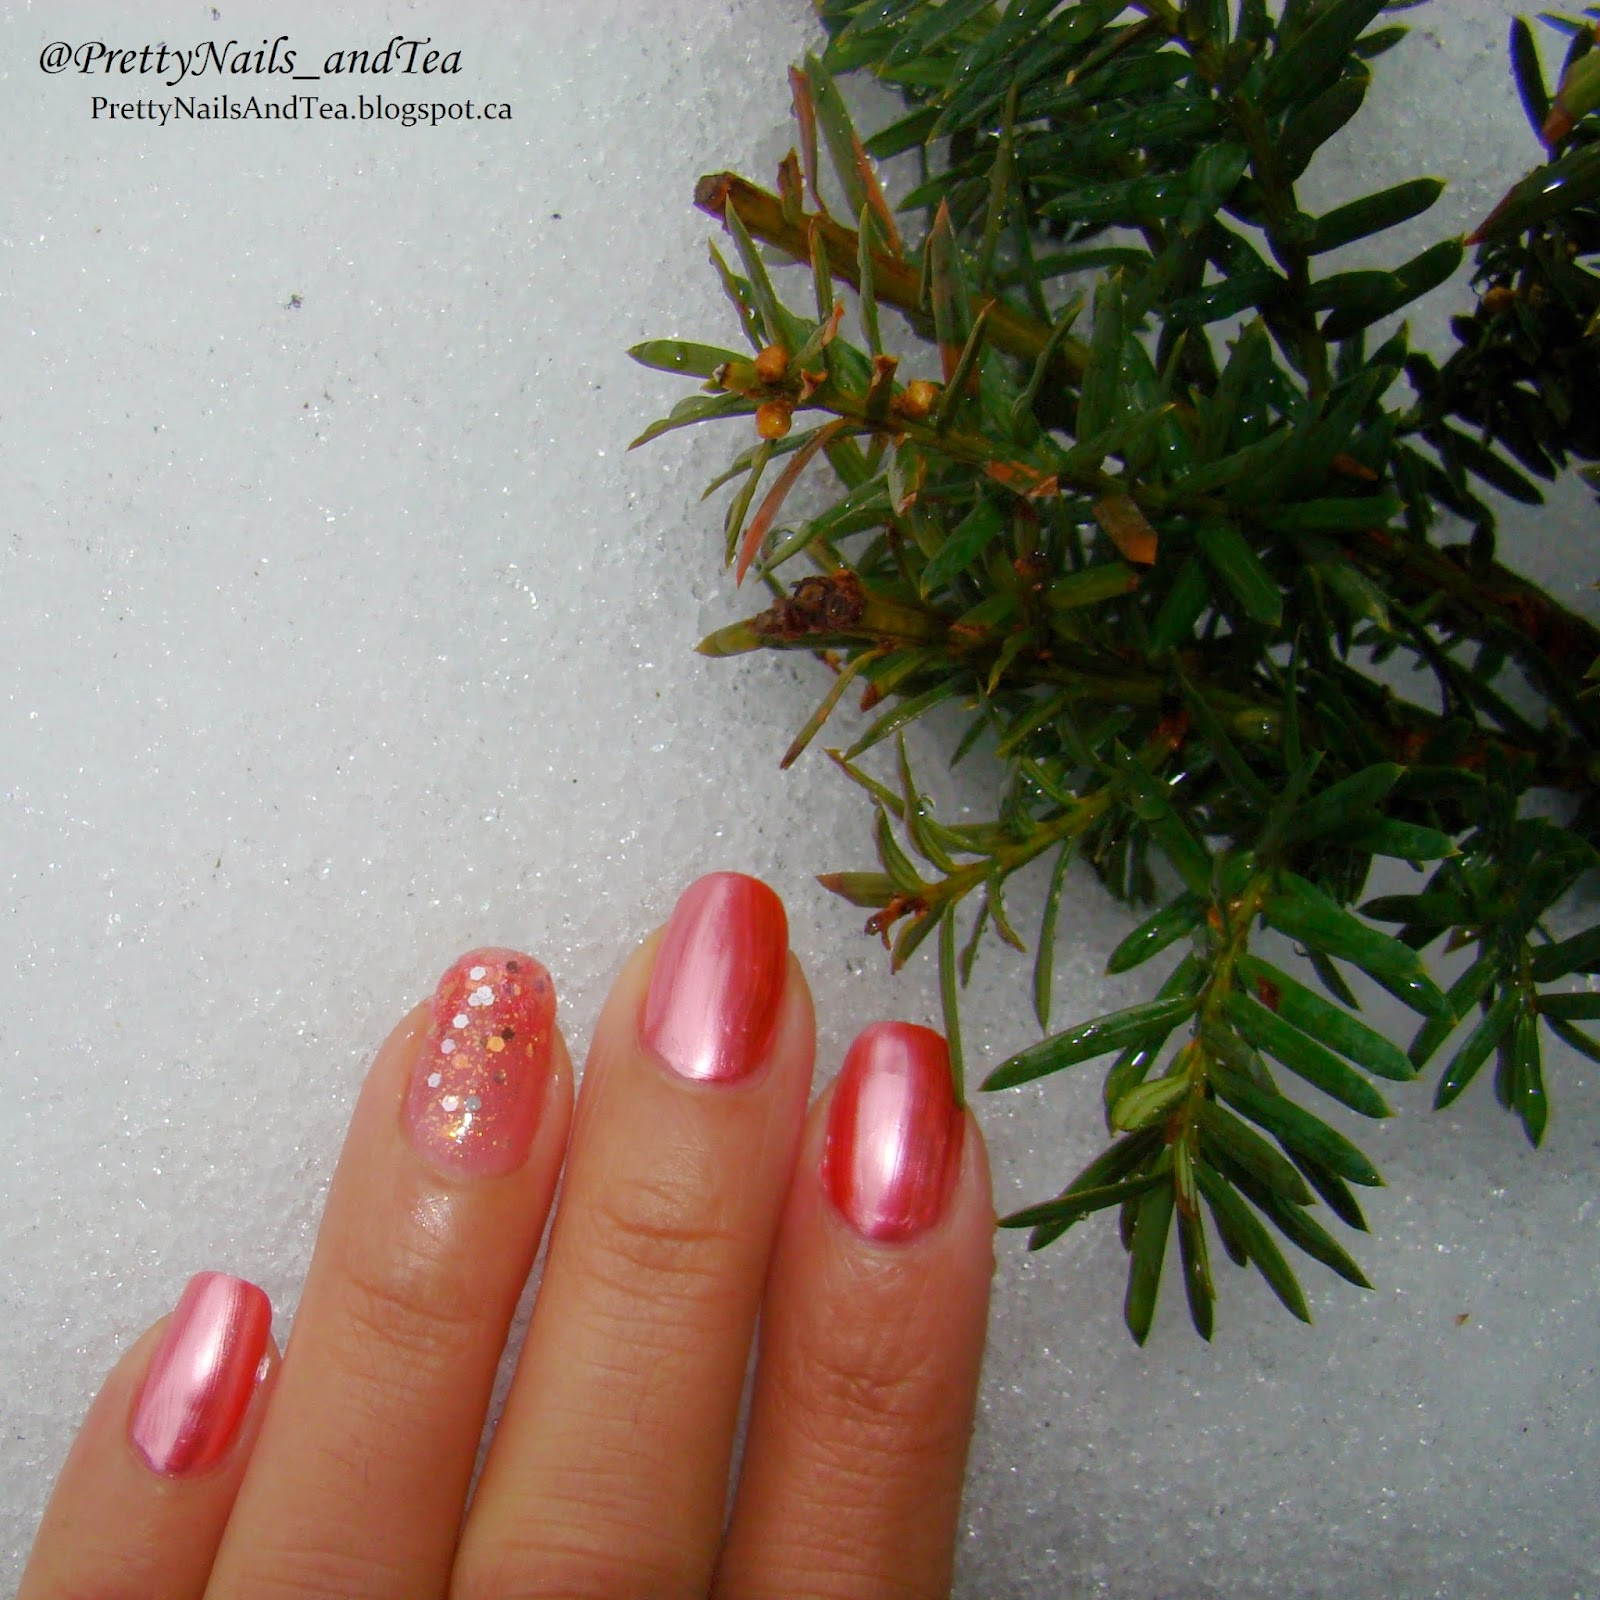 PINK Chrome pure ice polishes photo on ice